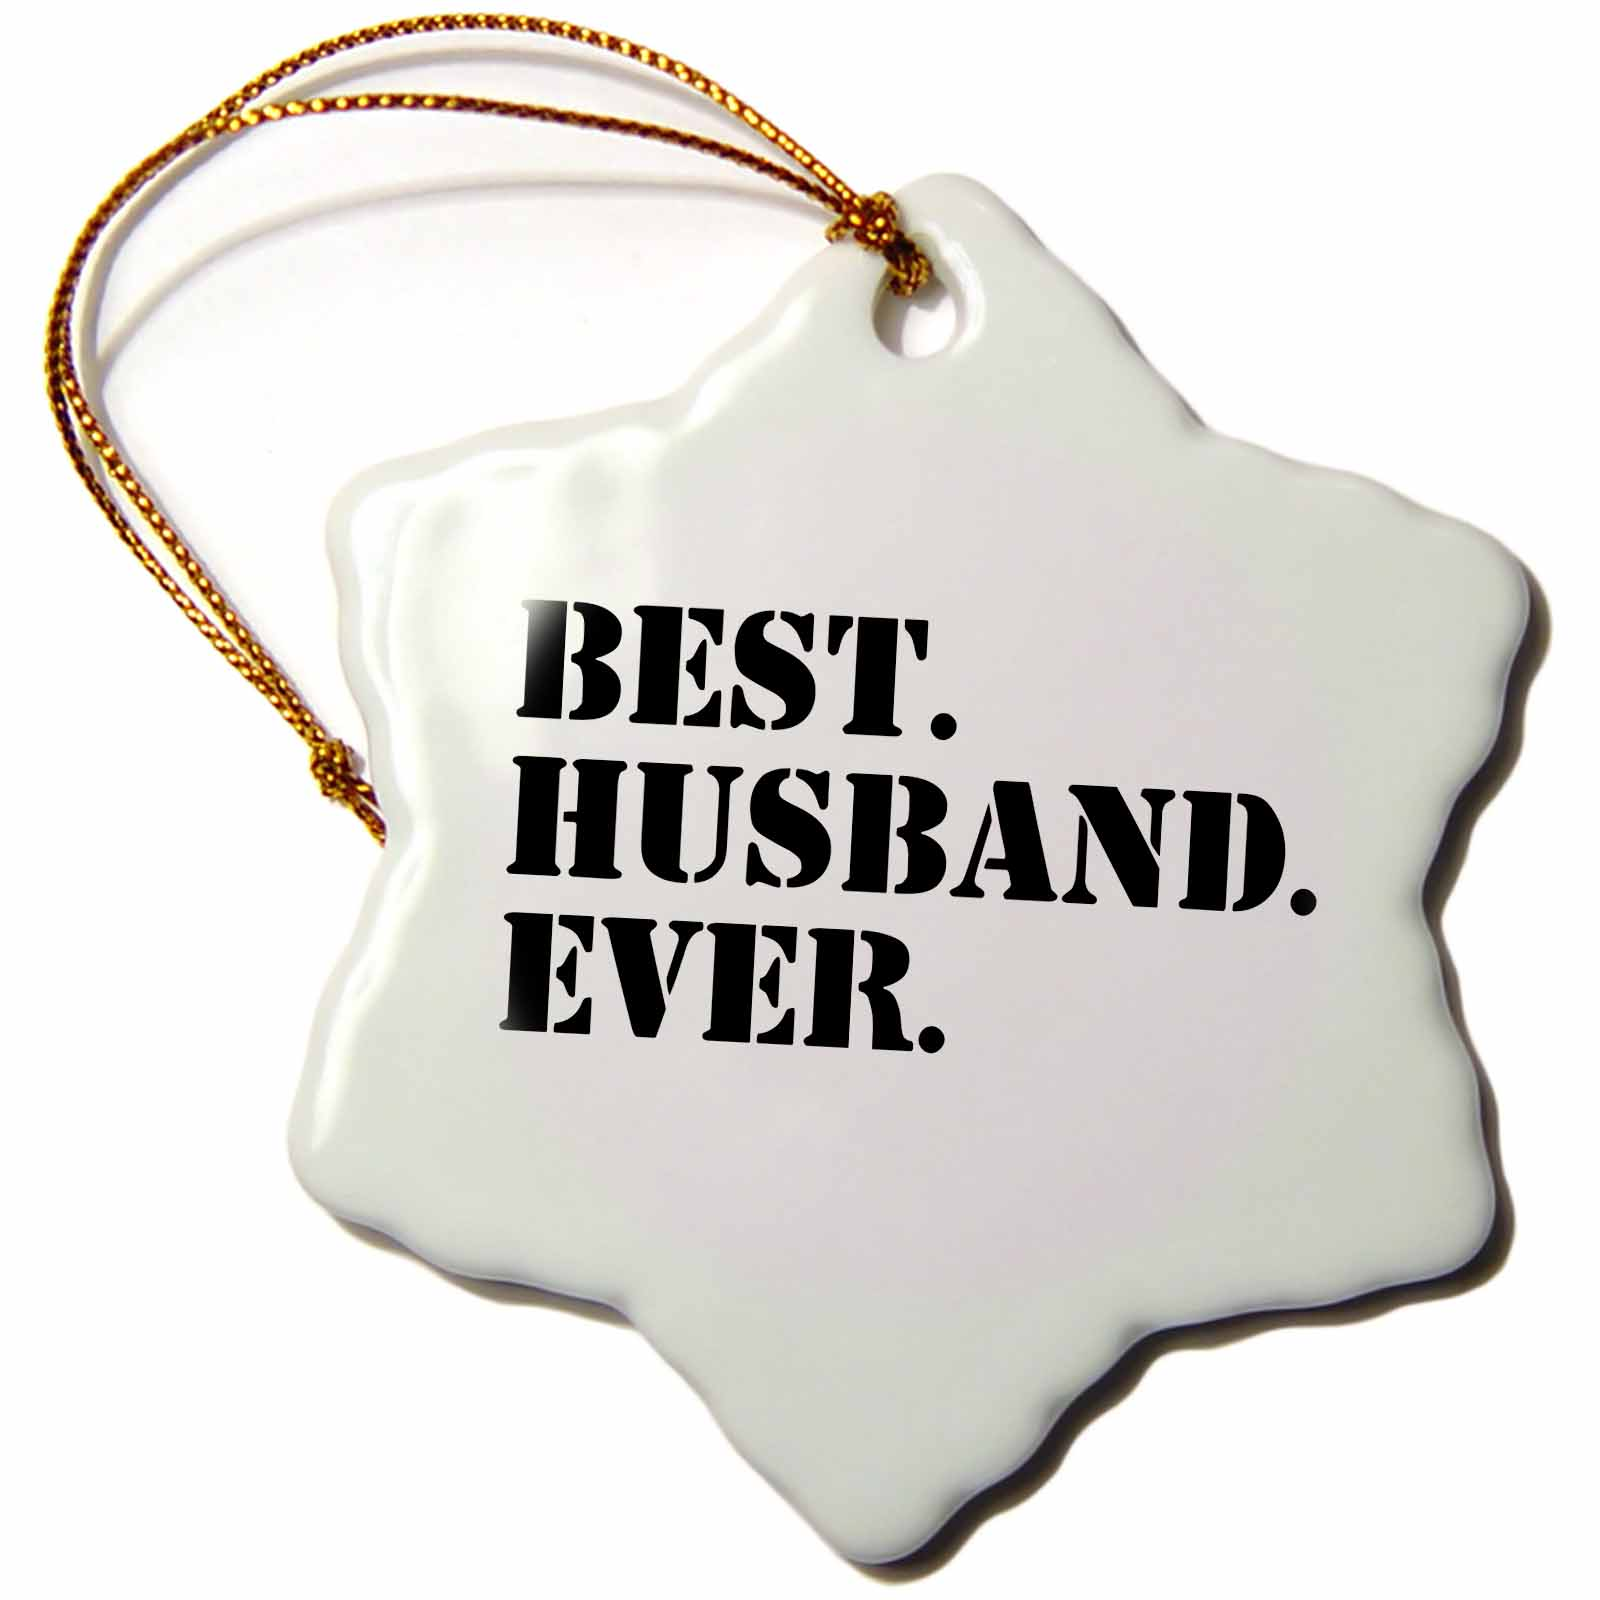 3dRose Best Husband Ever - fun romantic married wedded love gifts for him for anniversary or Valentines day, Snowflake Ornament, Porcelain, 3-inch